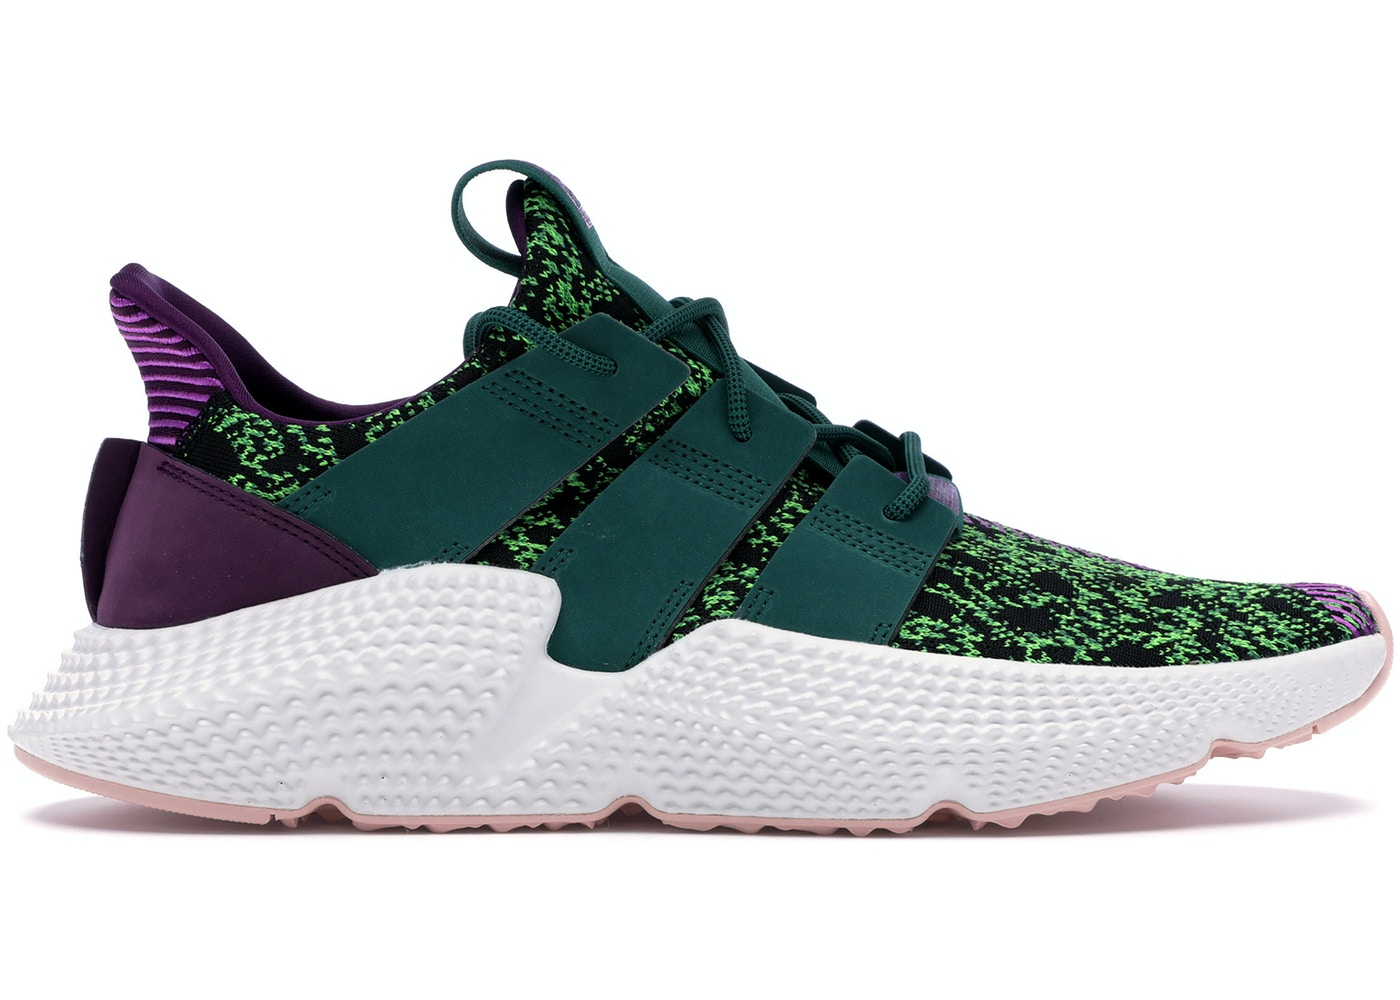 0284d7943a0cd adidas Prophere Dragon Ball Z Cell - D97053